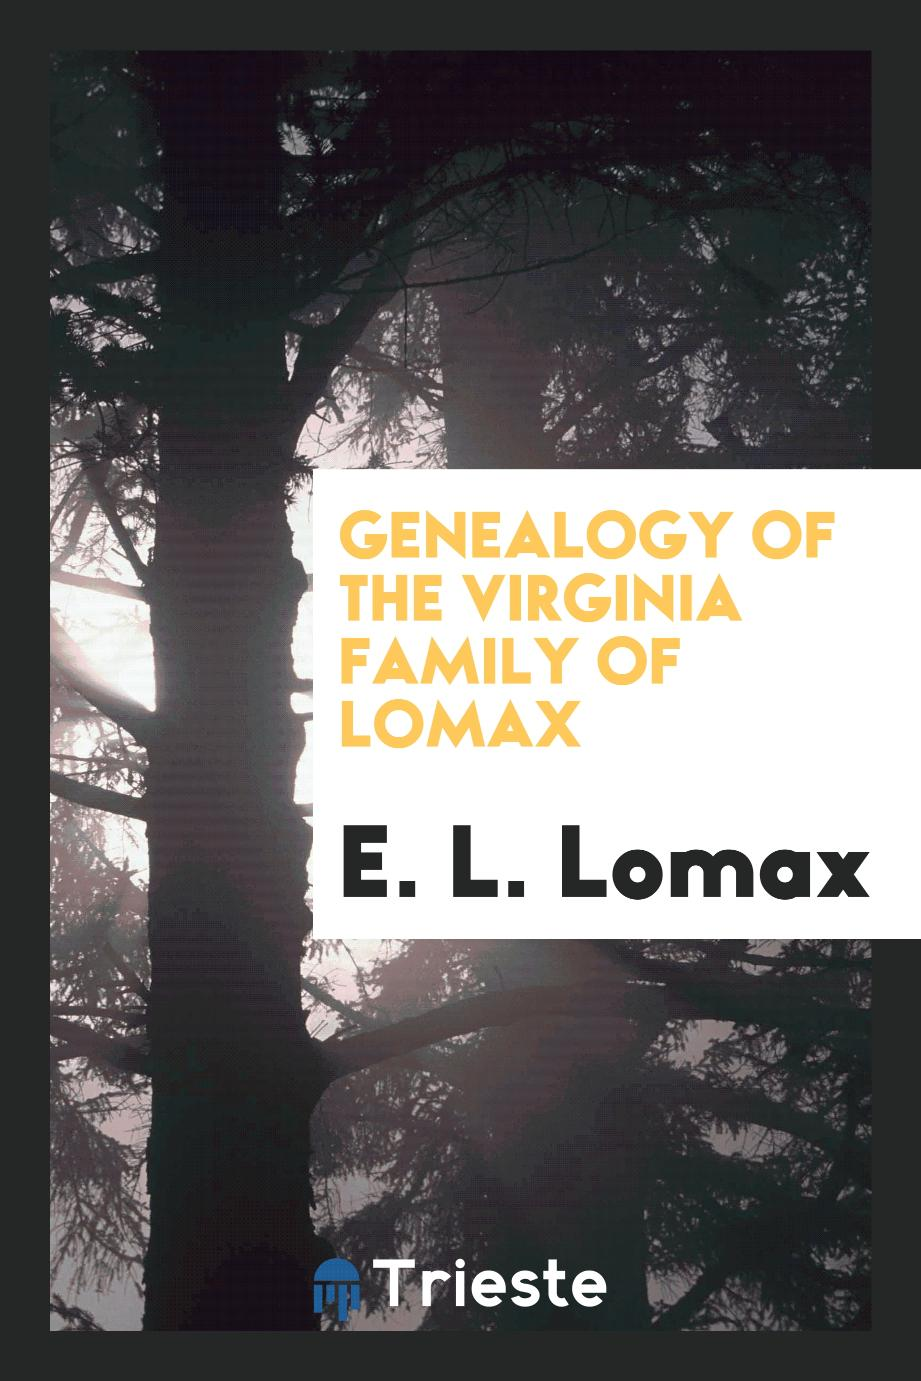 Genealogy of the Virginia Family of Lomax